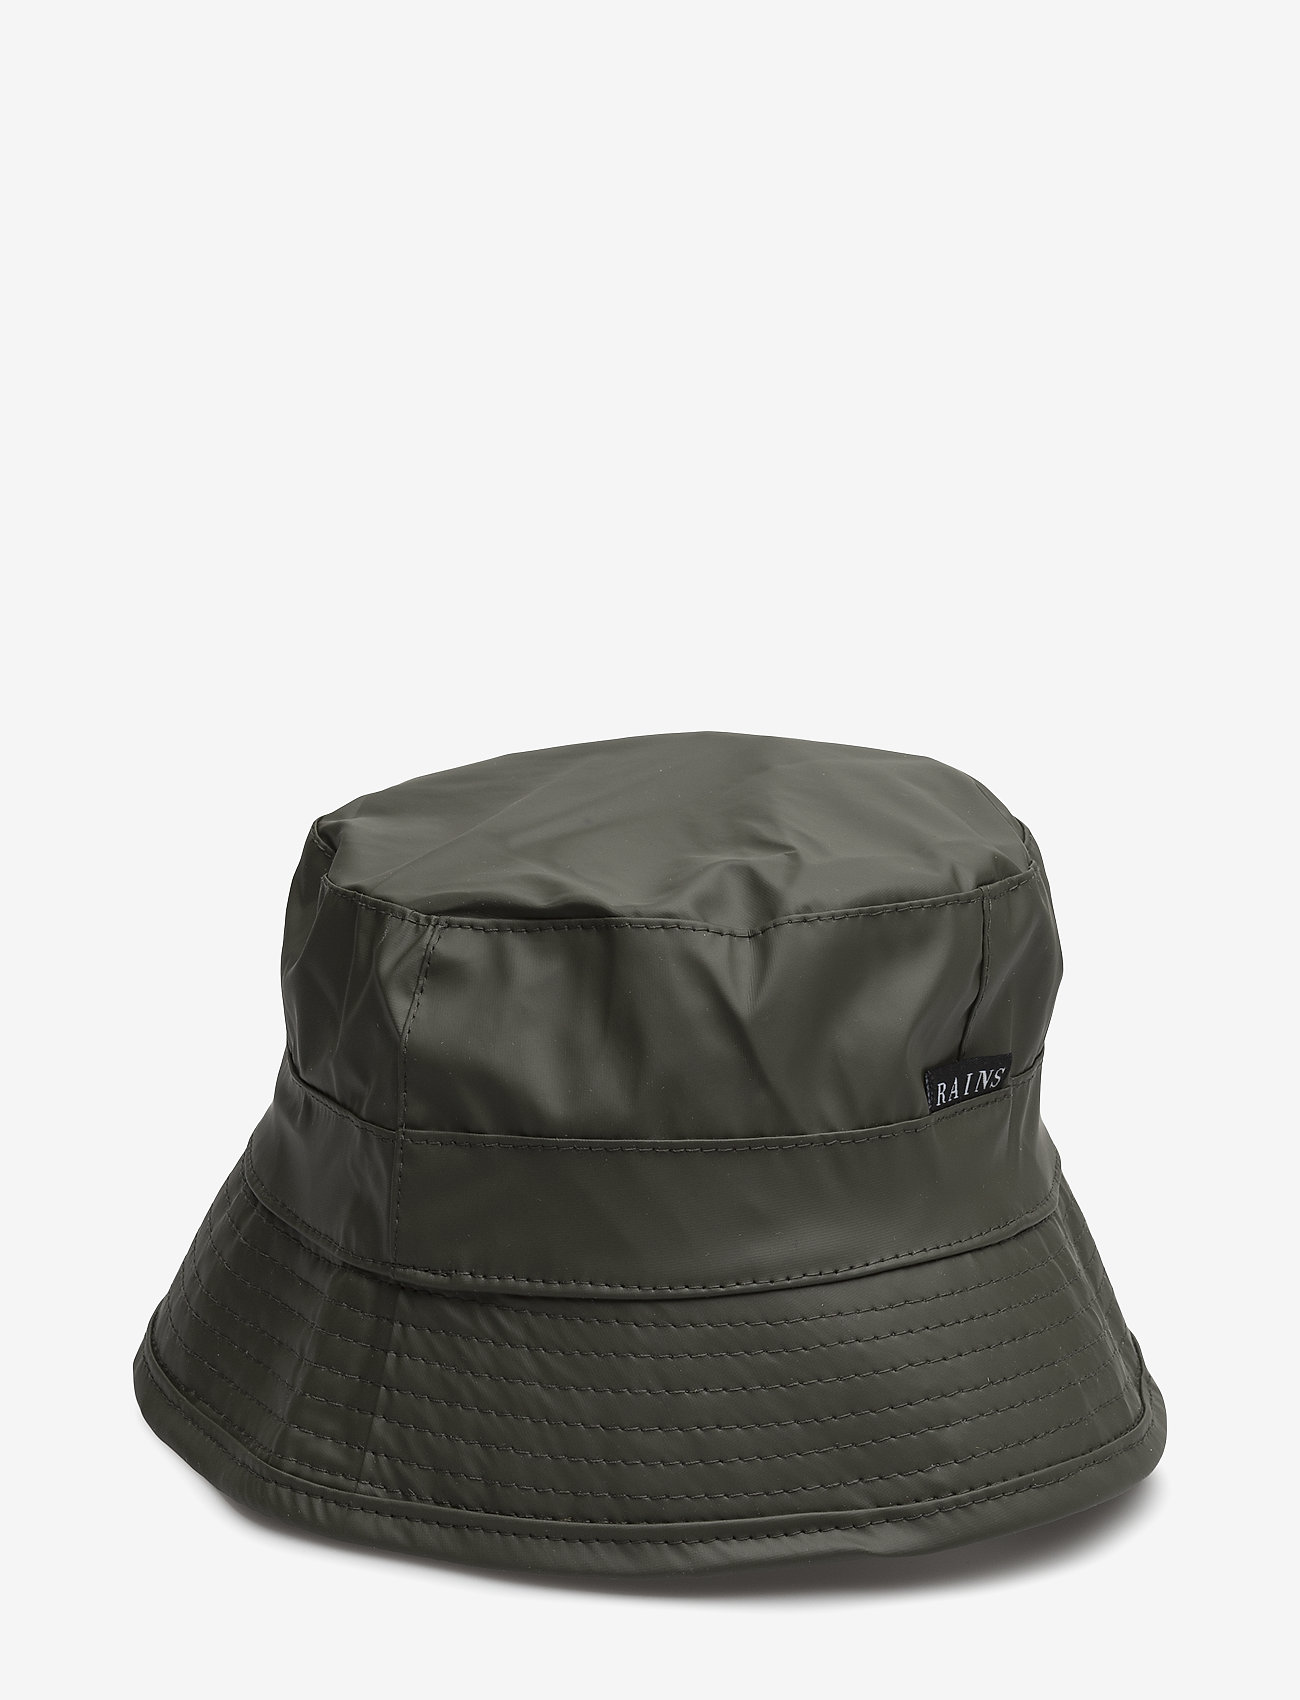 Rains - Bucket Hat - mützen & caps - 03 green - 0